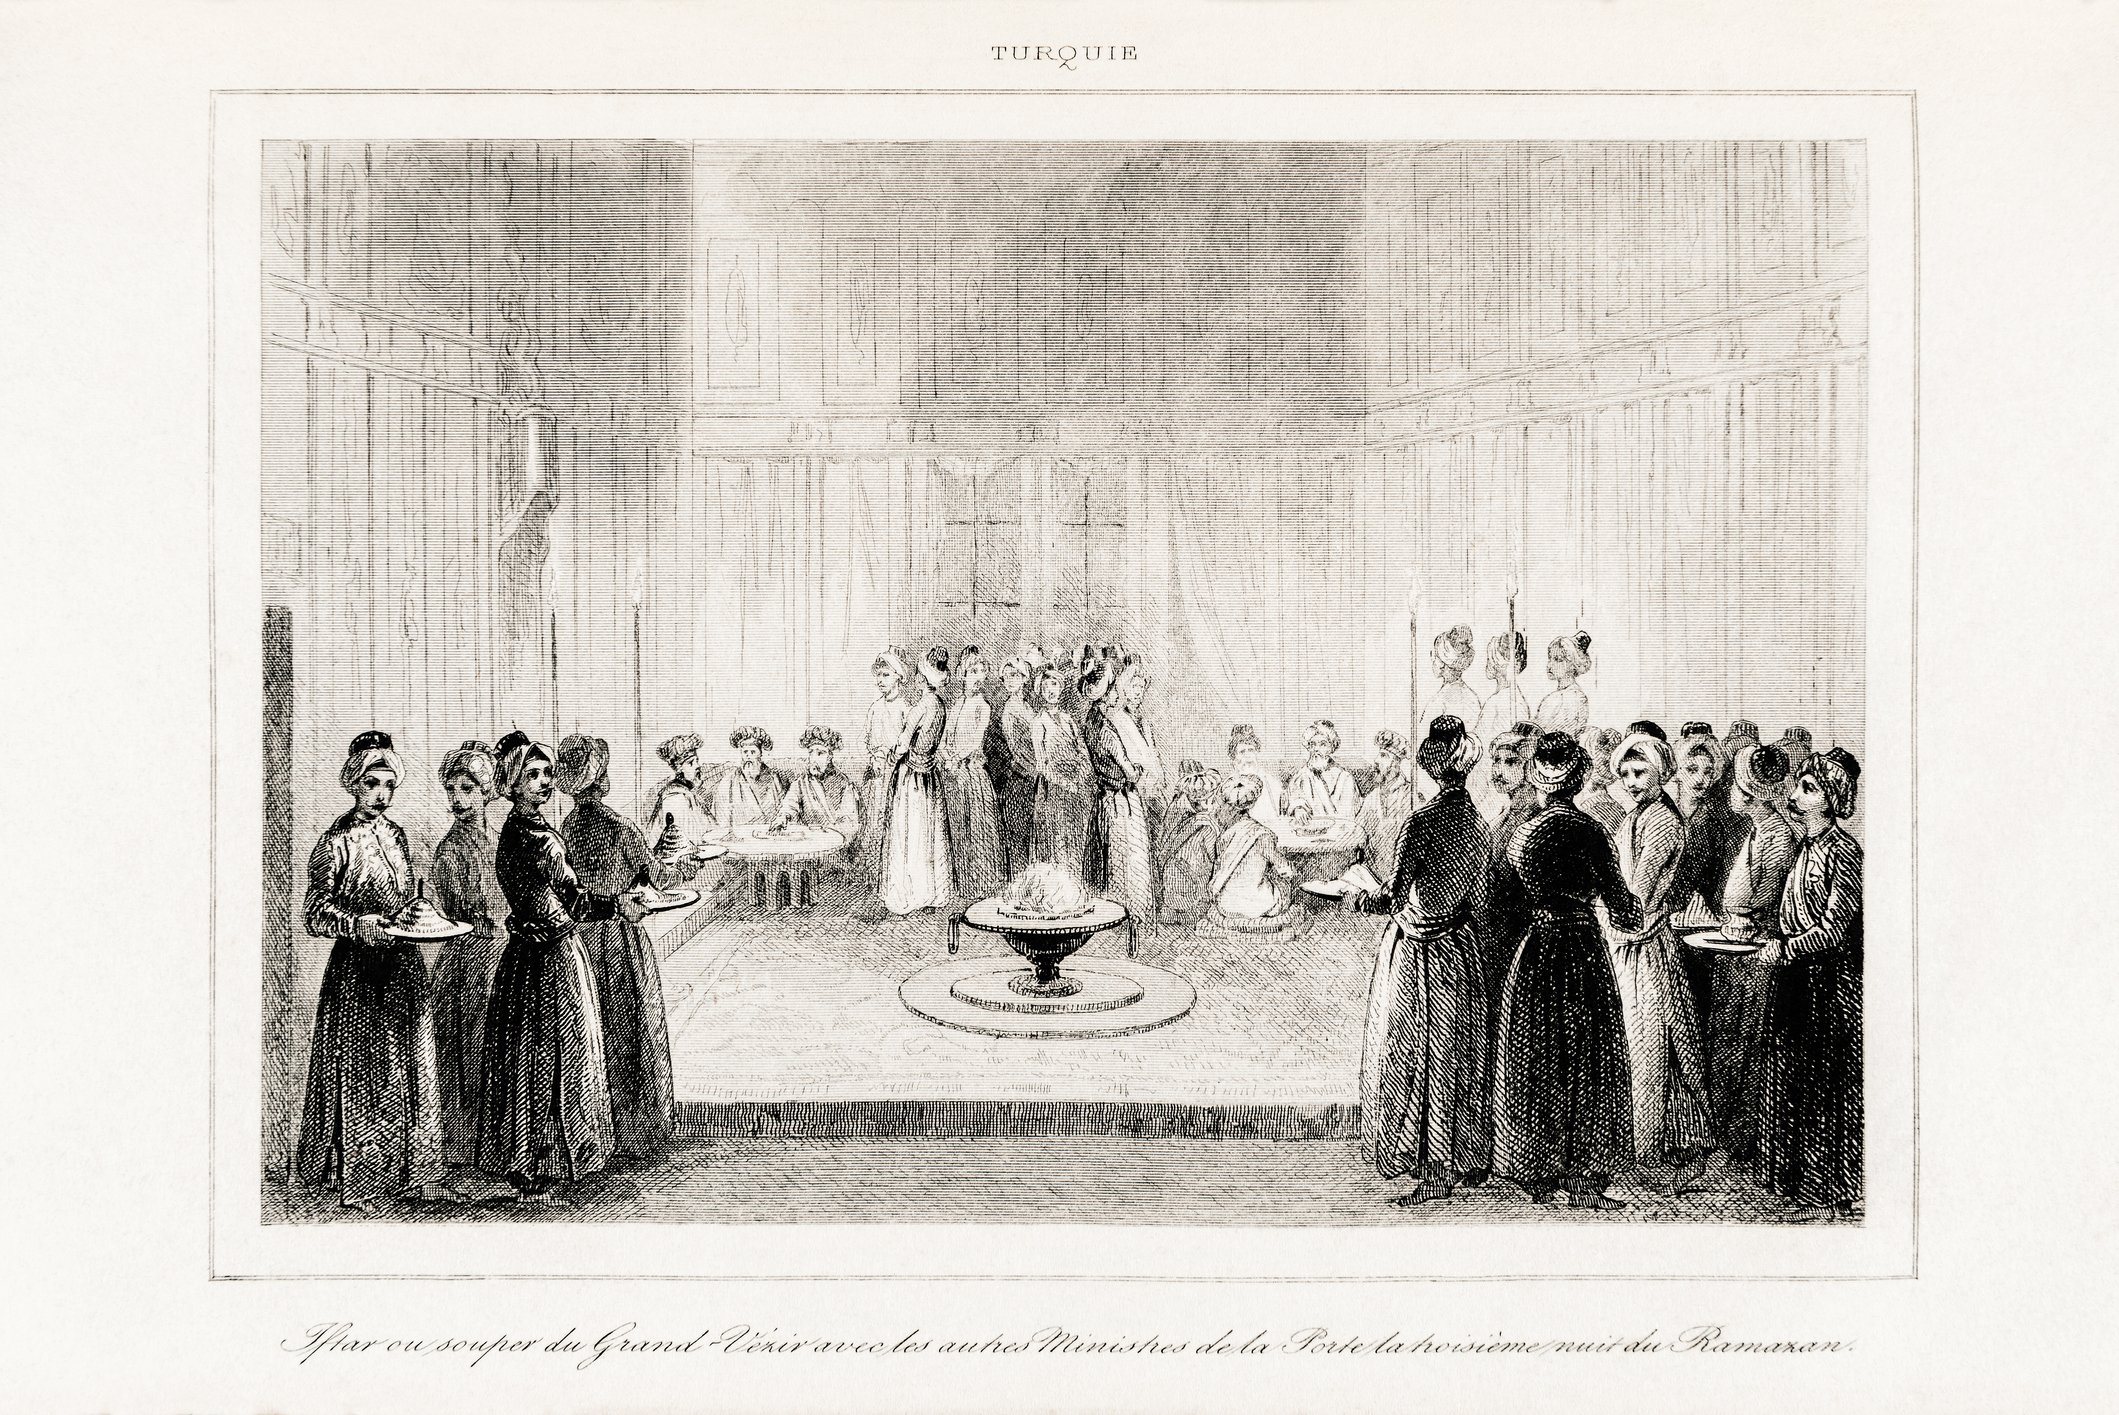 Steel-engraved antique print from the Turkey volume of L'Univers (Universe/Turkey), dated 1840, shows the Grand Vizier and guests at a Ramadan dinner. (iStock Photo)